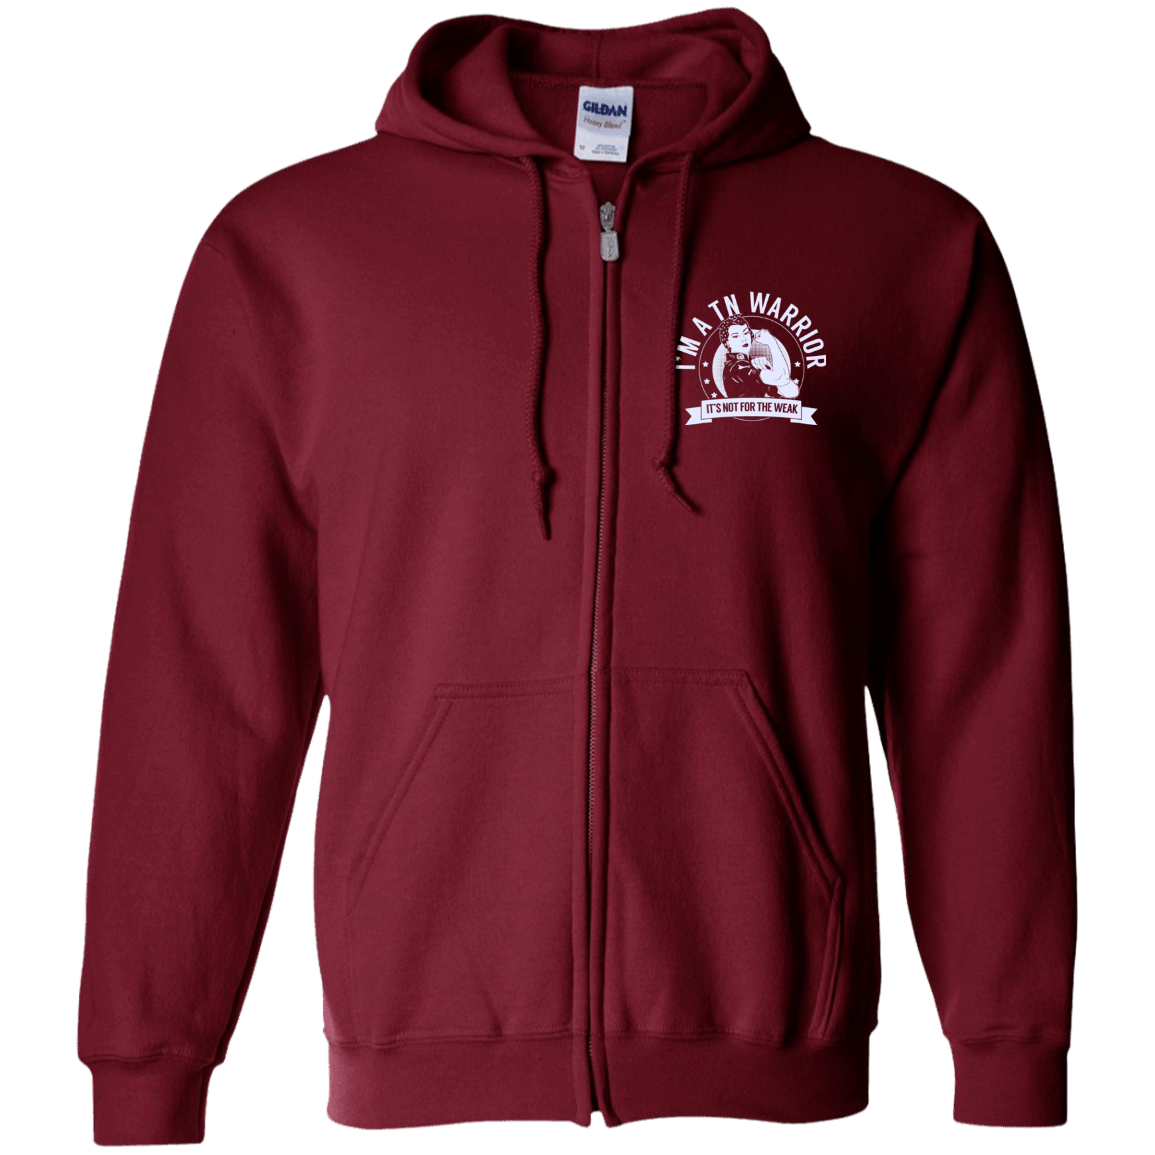 Trigeminal Neuralgia - TN Warrior NFTW Zip Up Hooded Sweatshirt - The Unchargeables